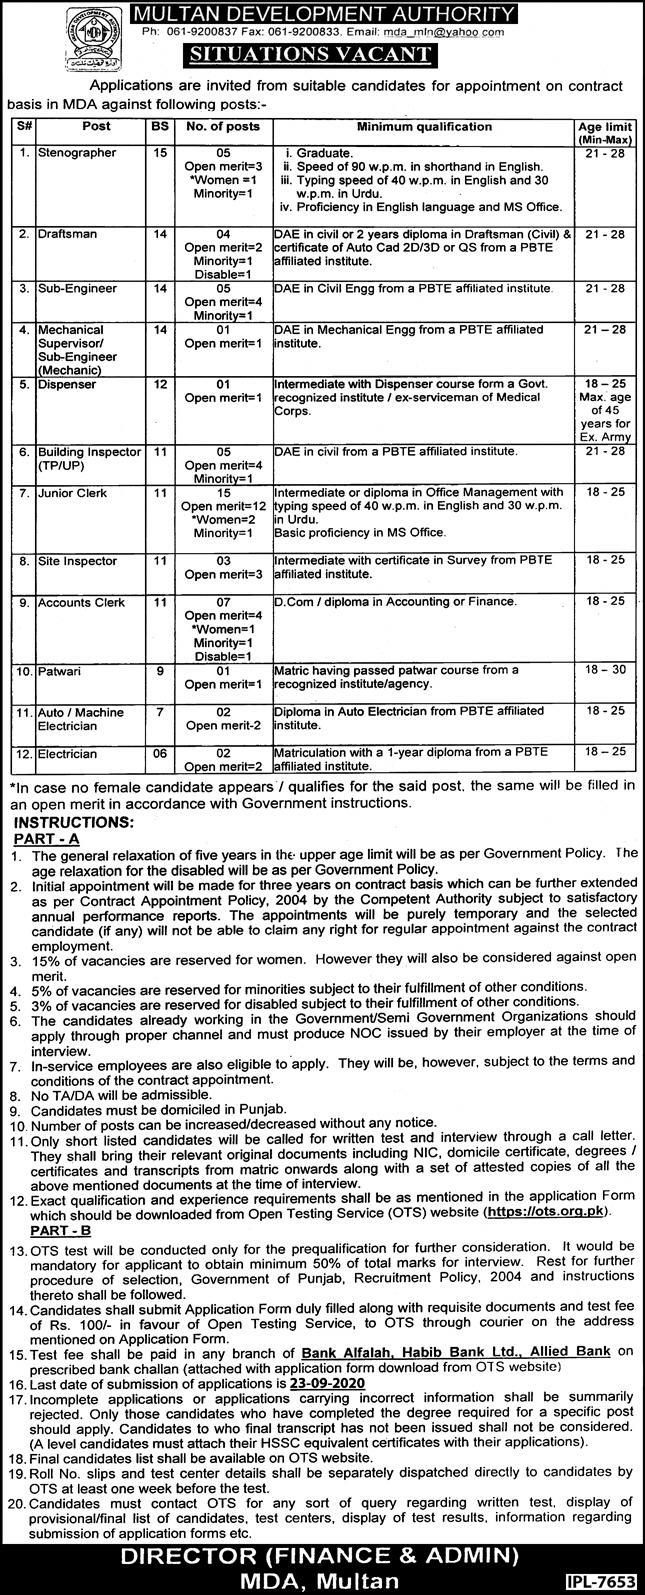 Multan Development Authority jobs